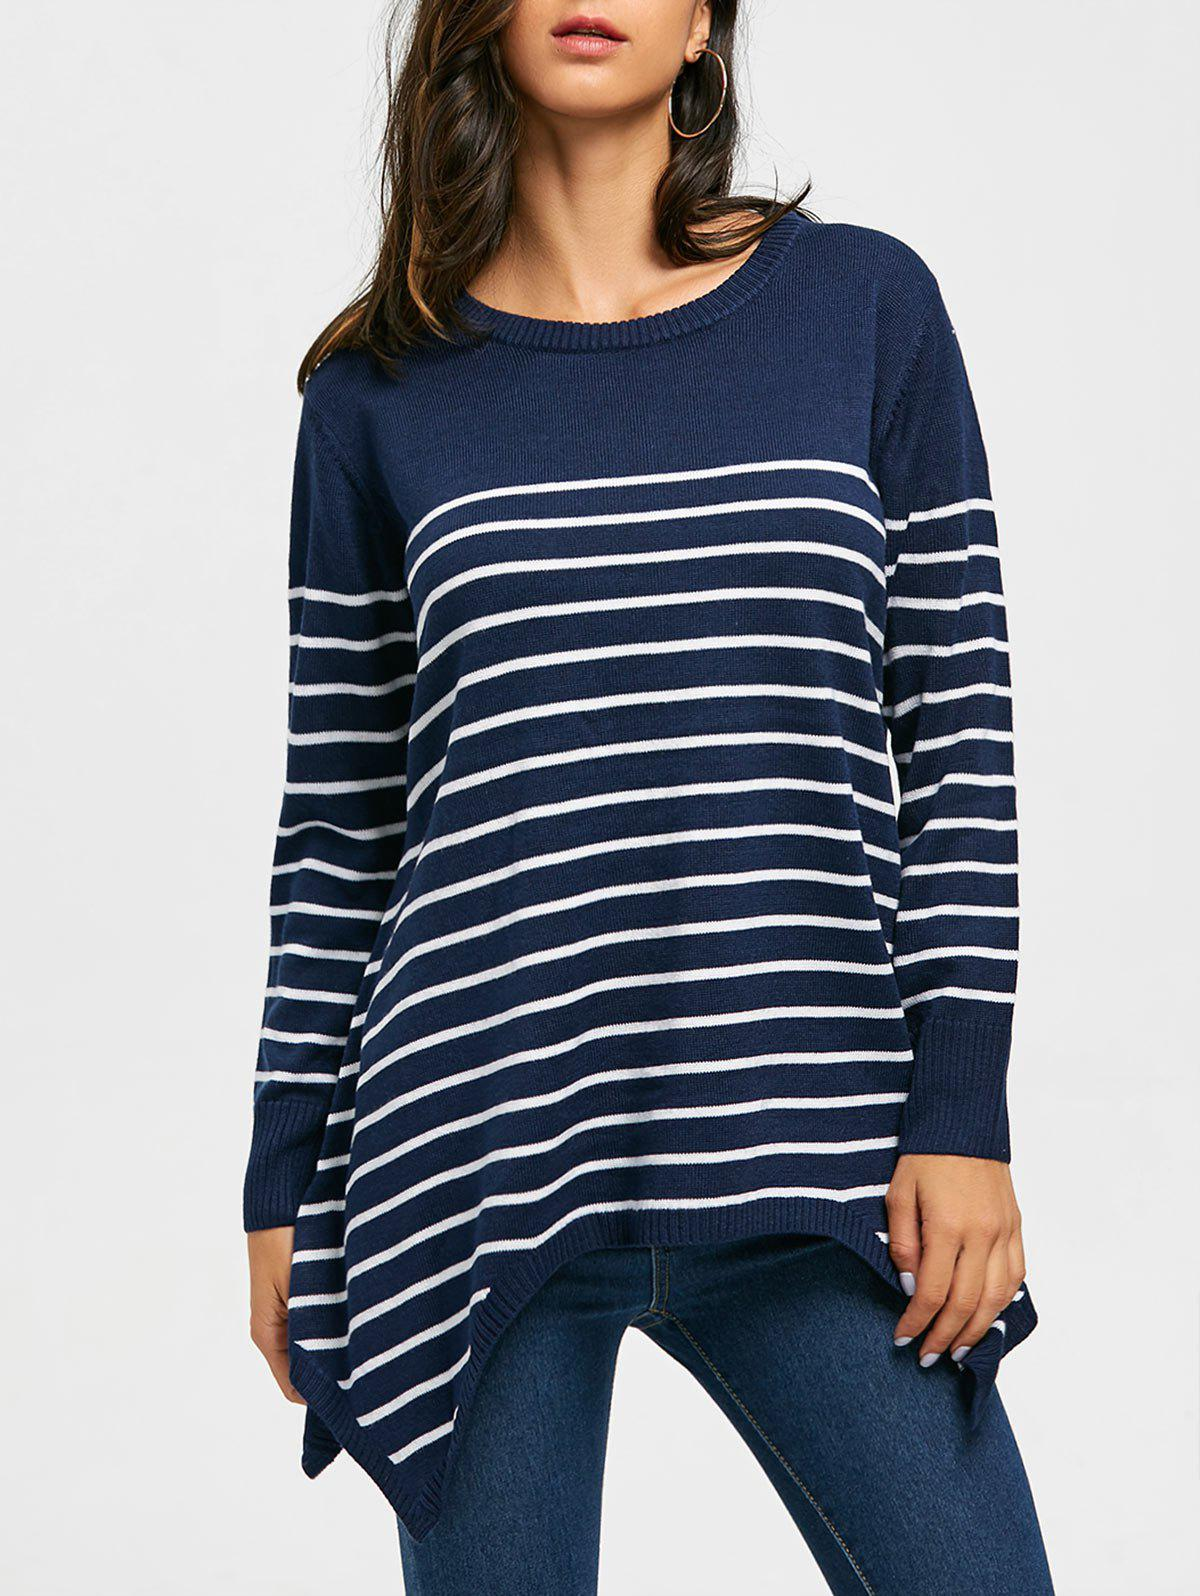 Discount Loose Fitting Striped Asymmetrical Knitwear